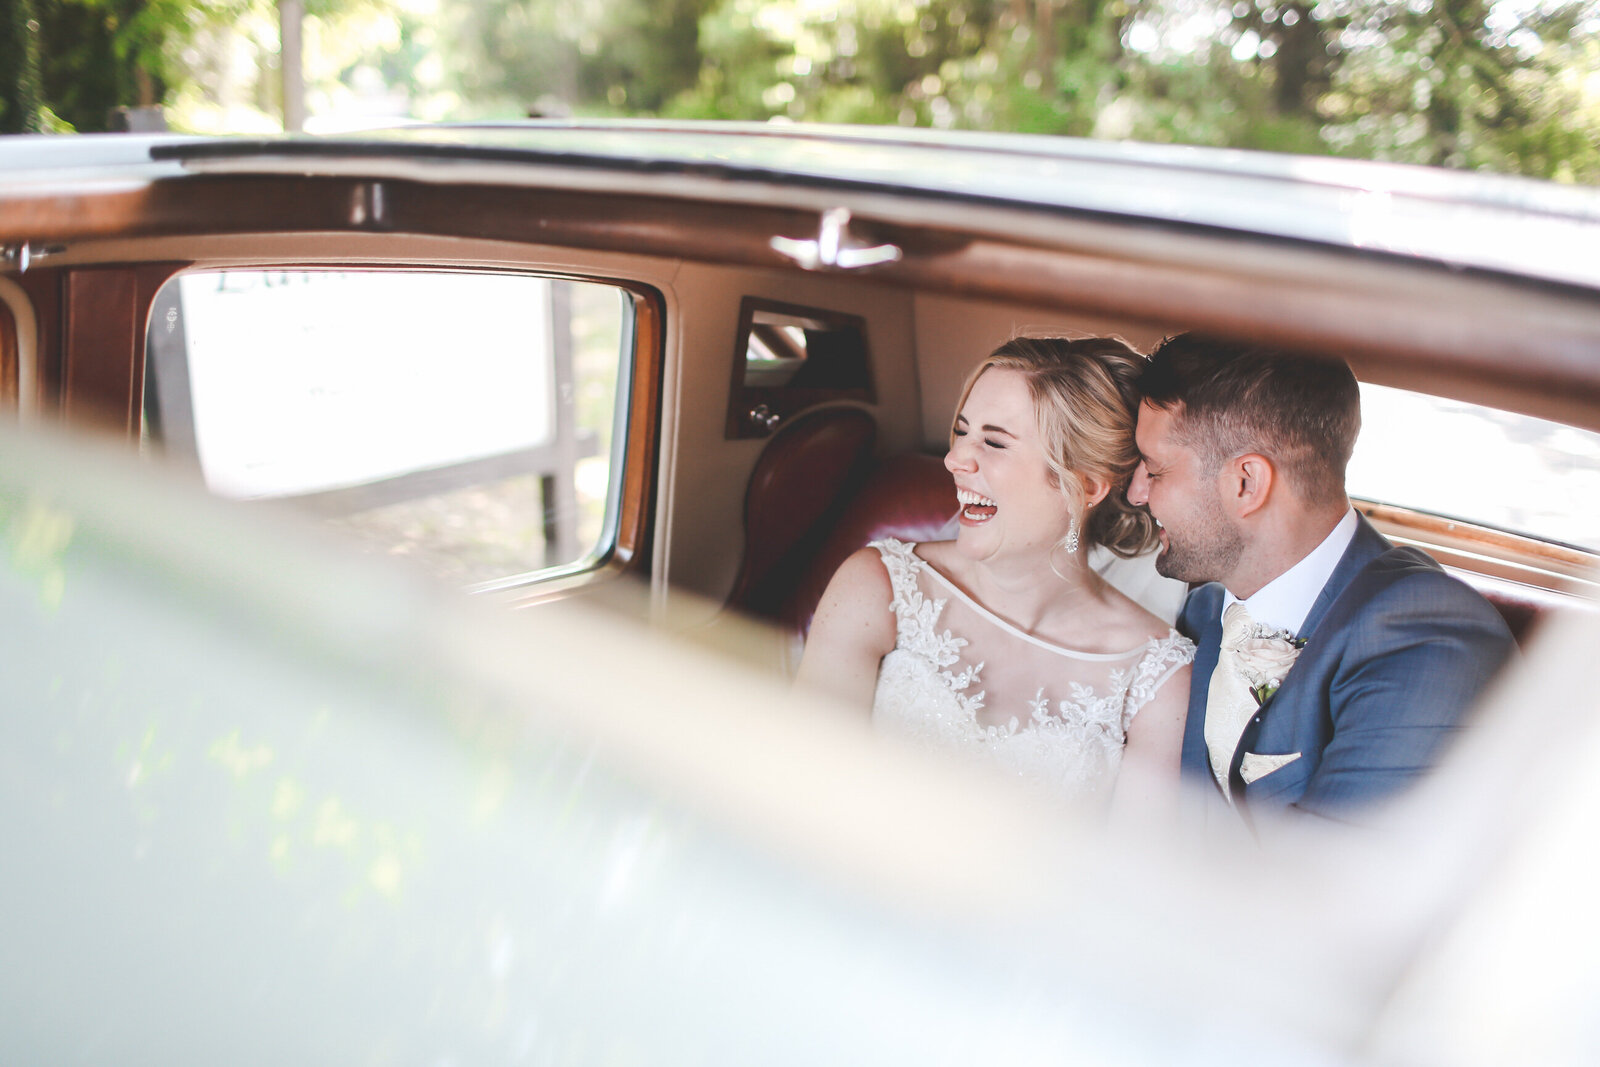 WP-SURREY-WEDDING-FUN-BRIDE-GROOM-LAUGHING-CAR-NATURAL_0004